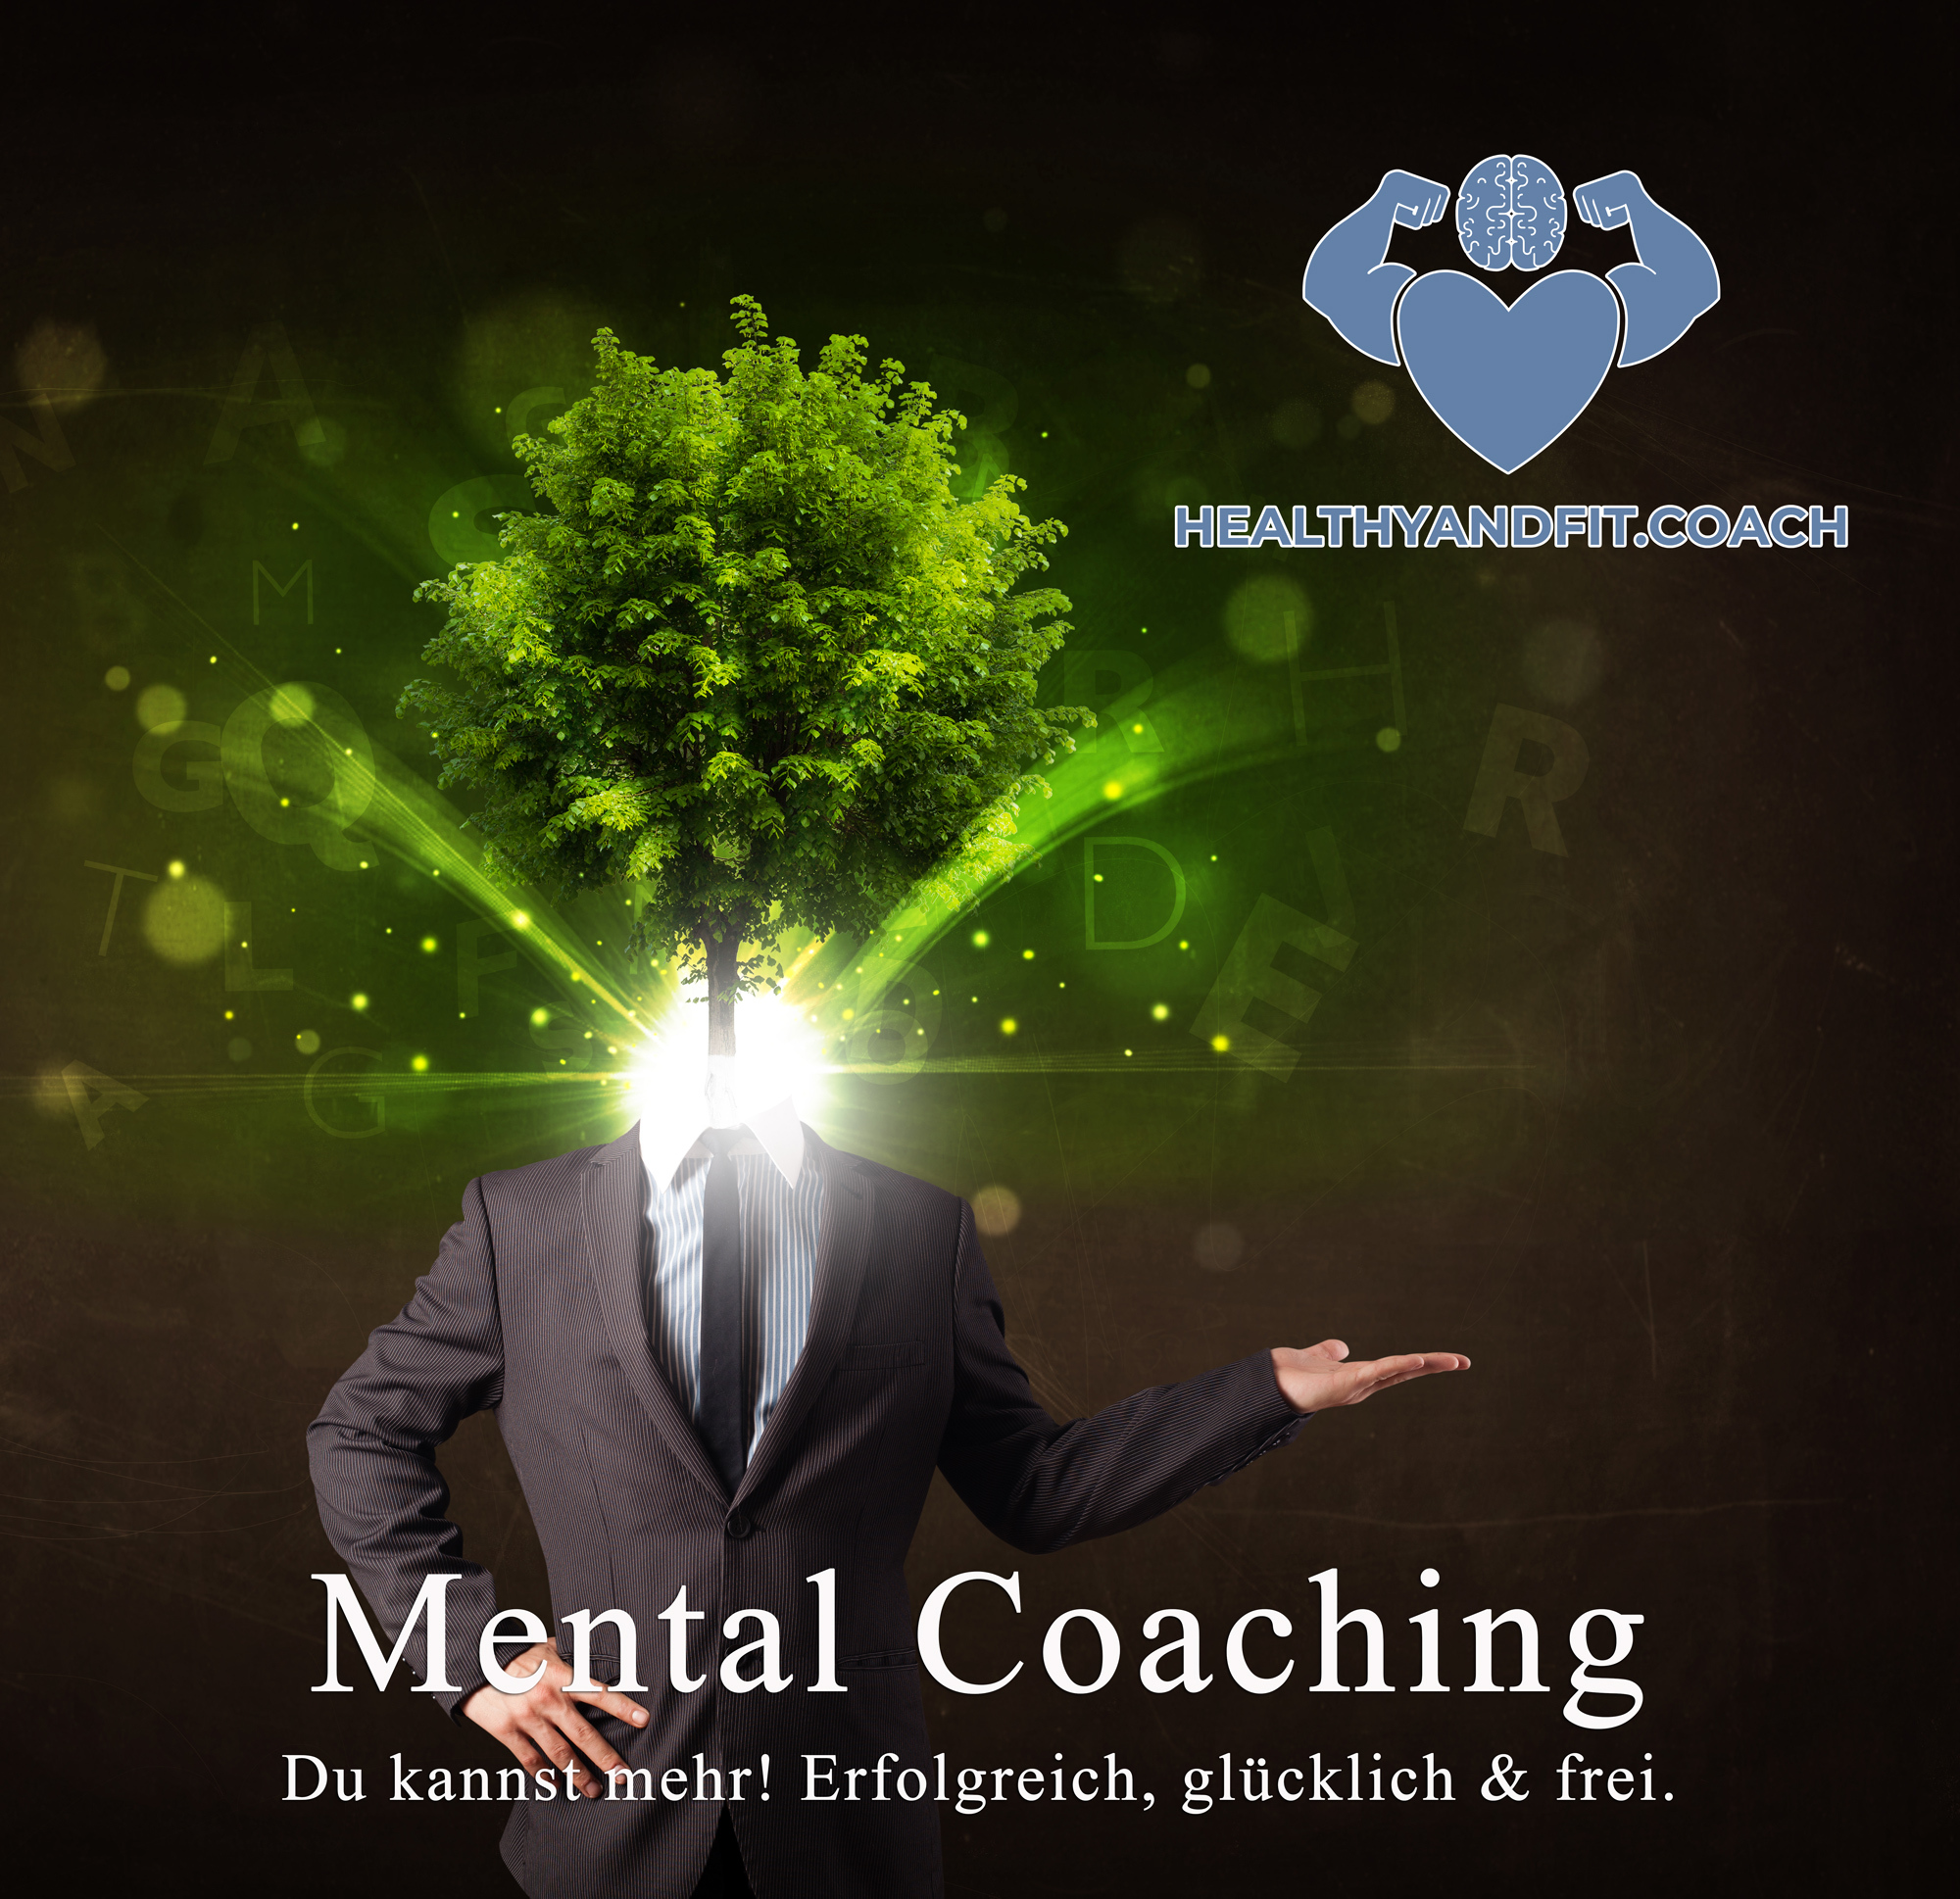 Derase Mental Coaching